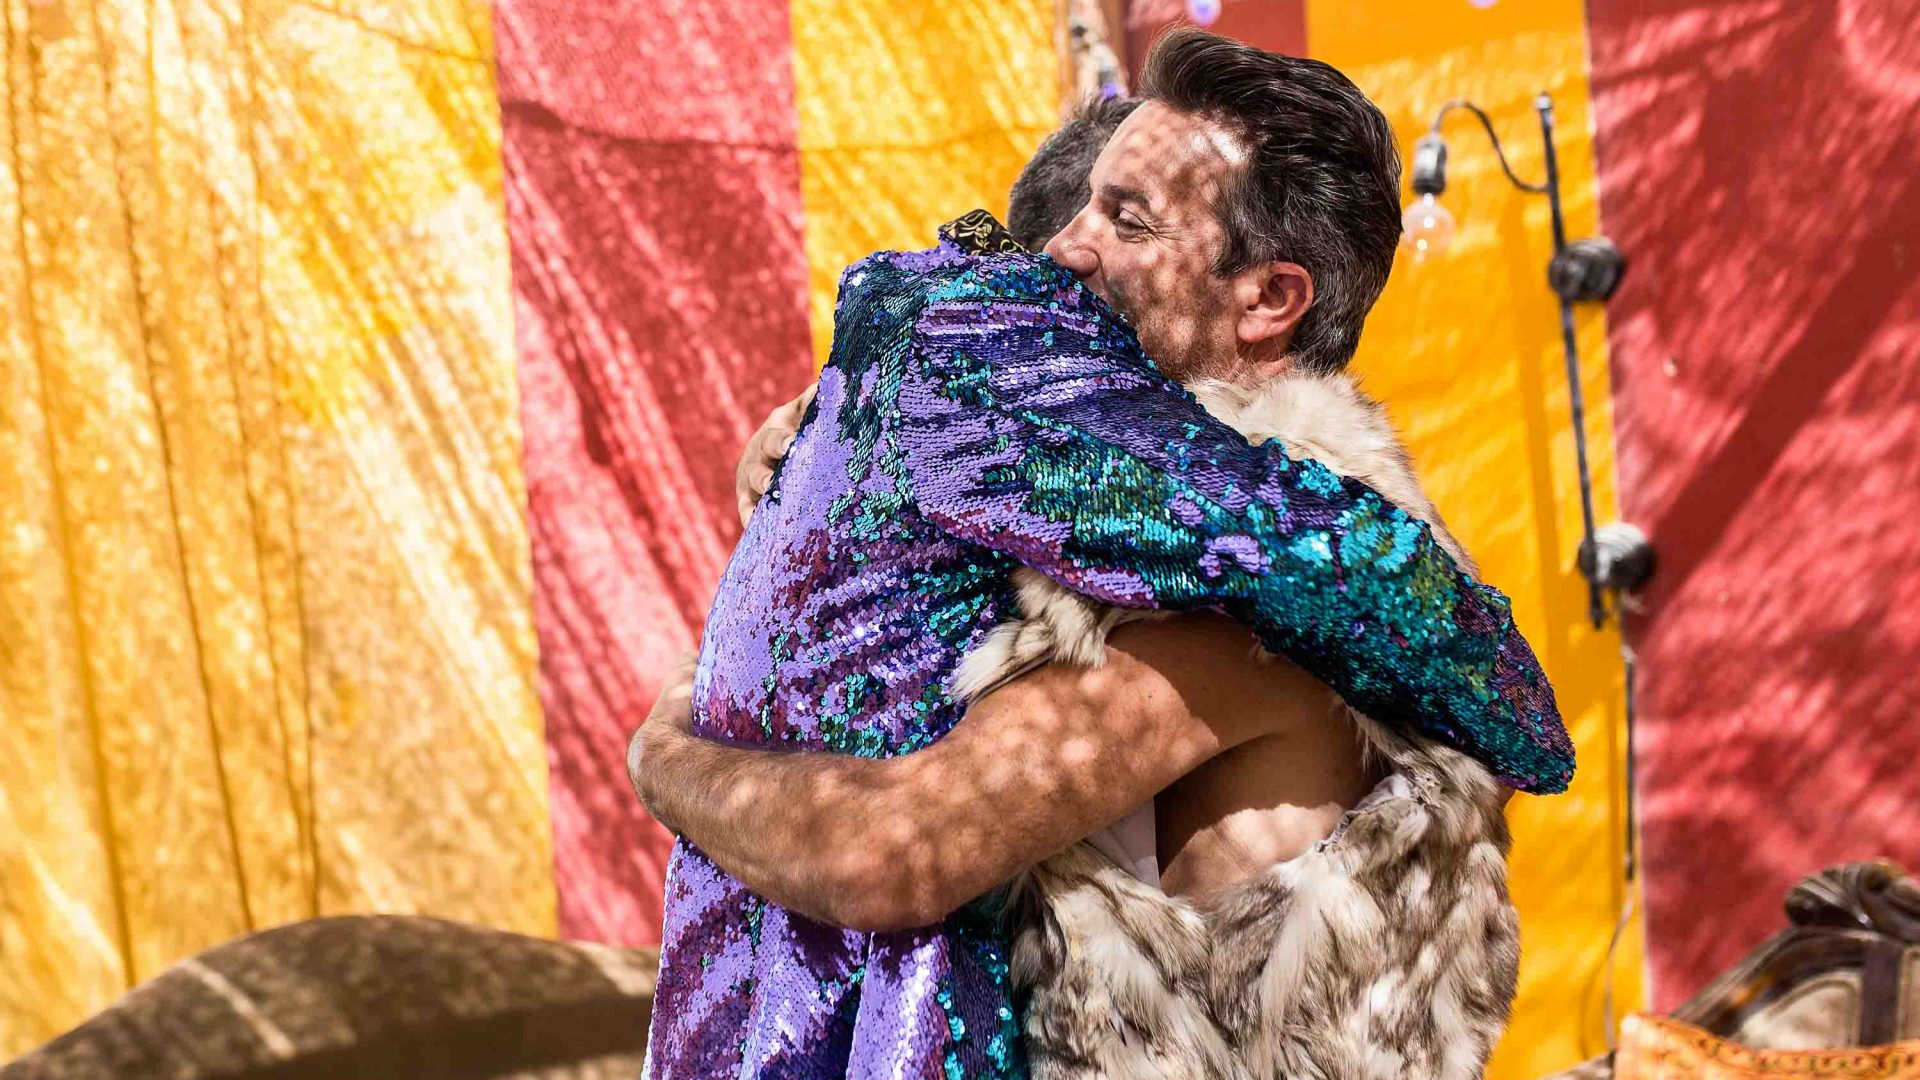 Gordon Farber hugs his brother Rowan Farber at their camp at Burning Man.